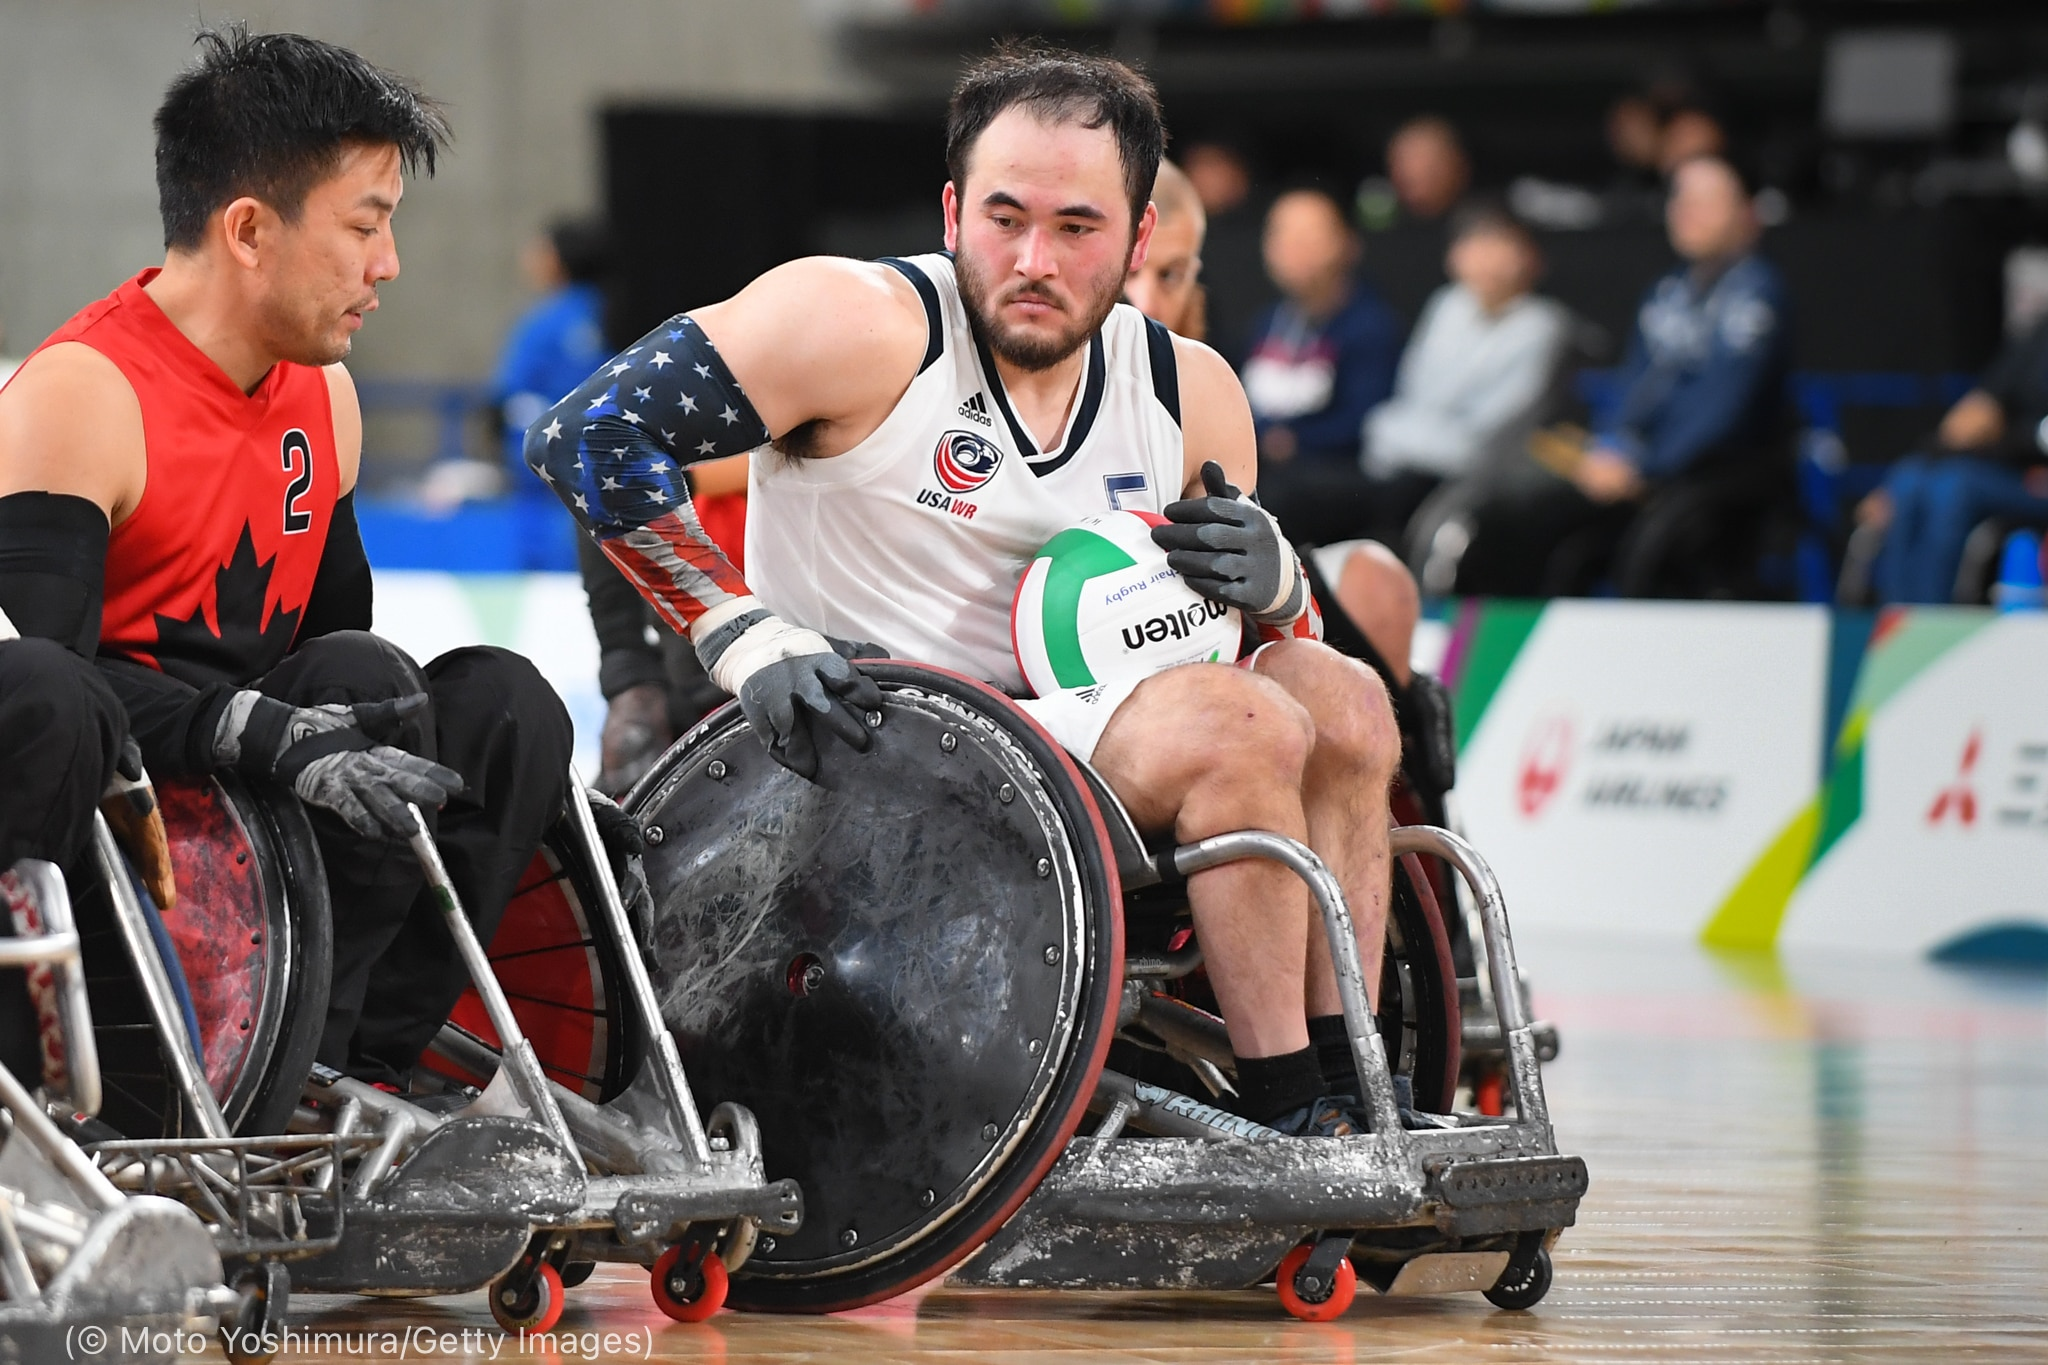 Men in wheelchairs playing rugby (© Moto Yoshimura/Getty Images)